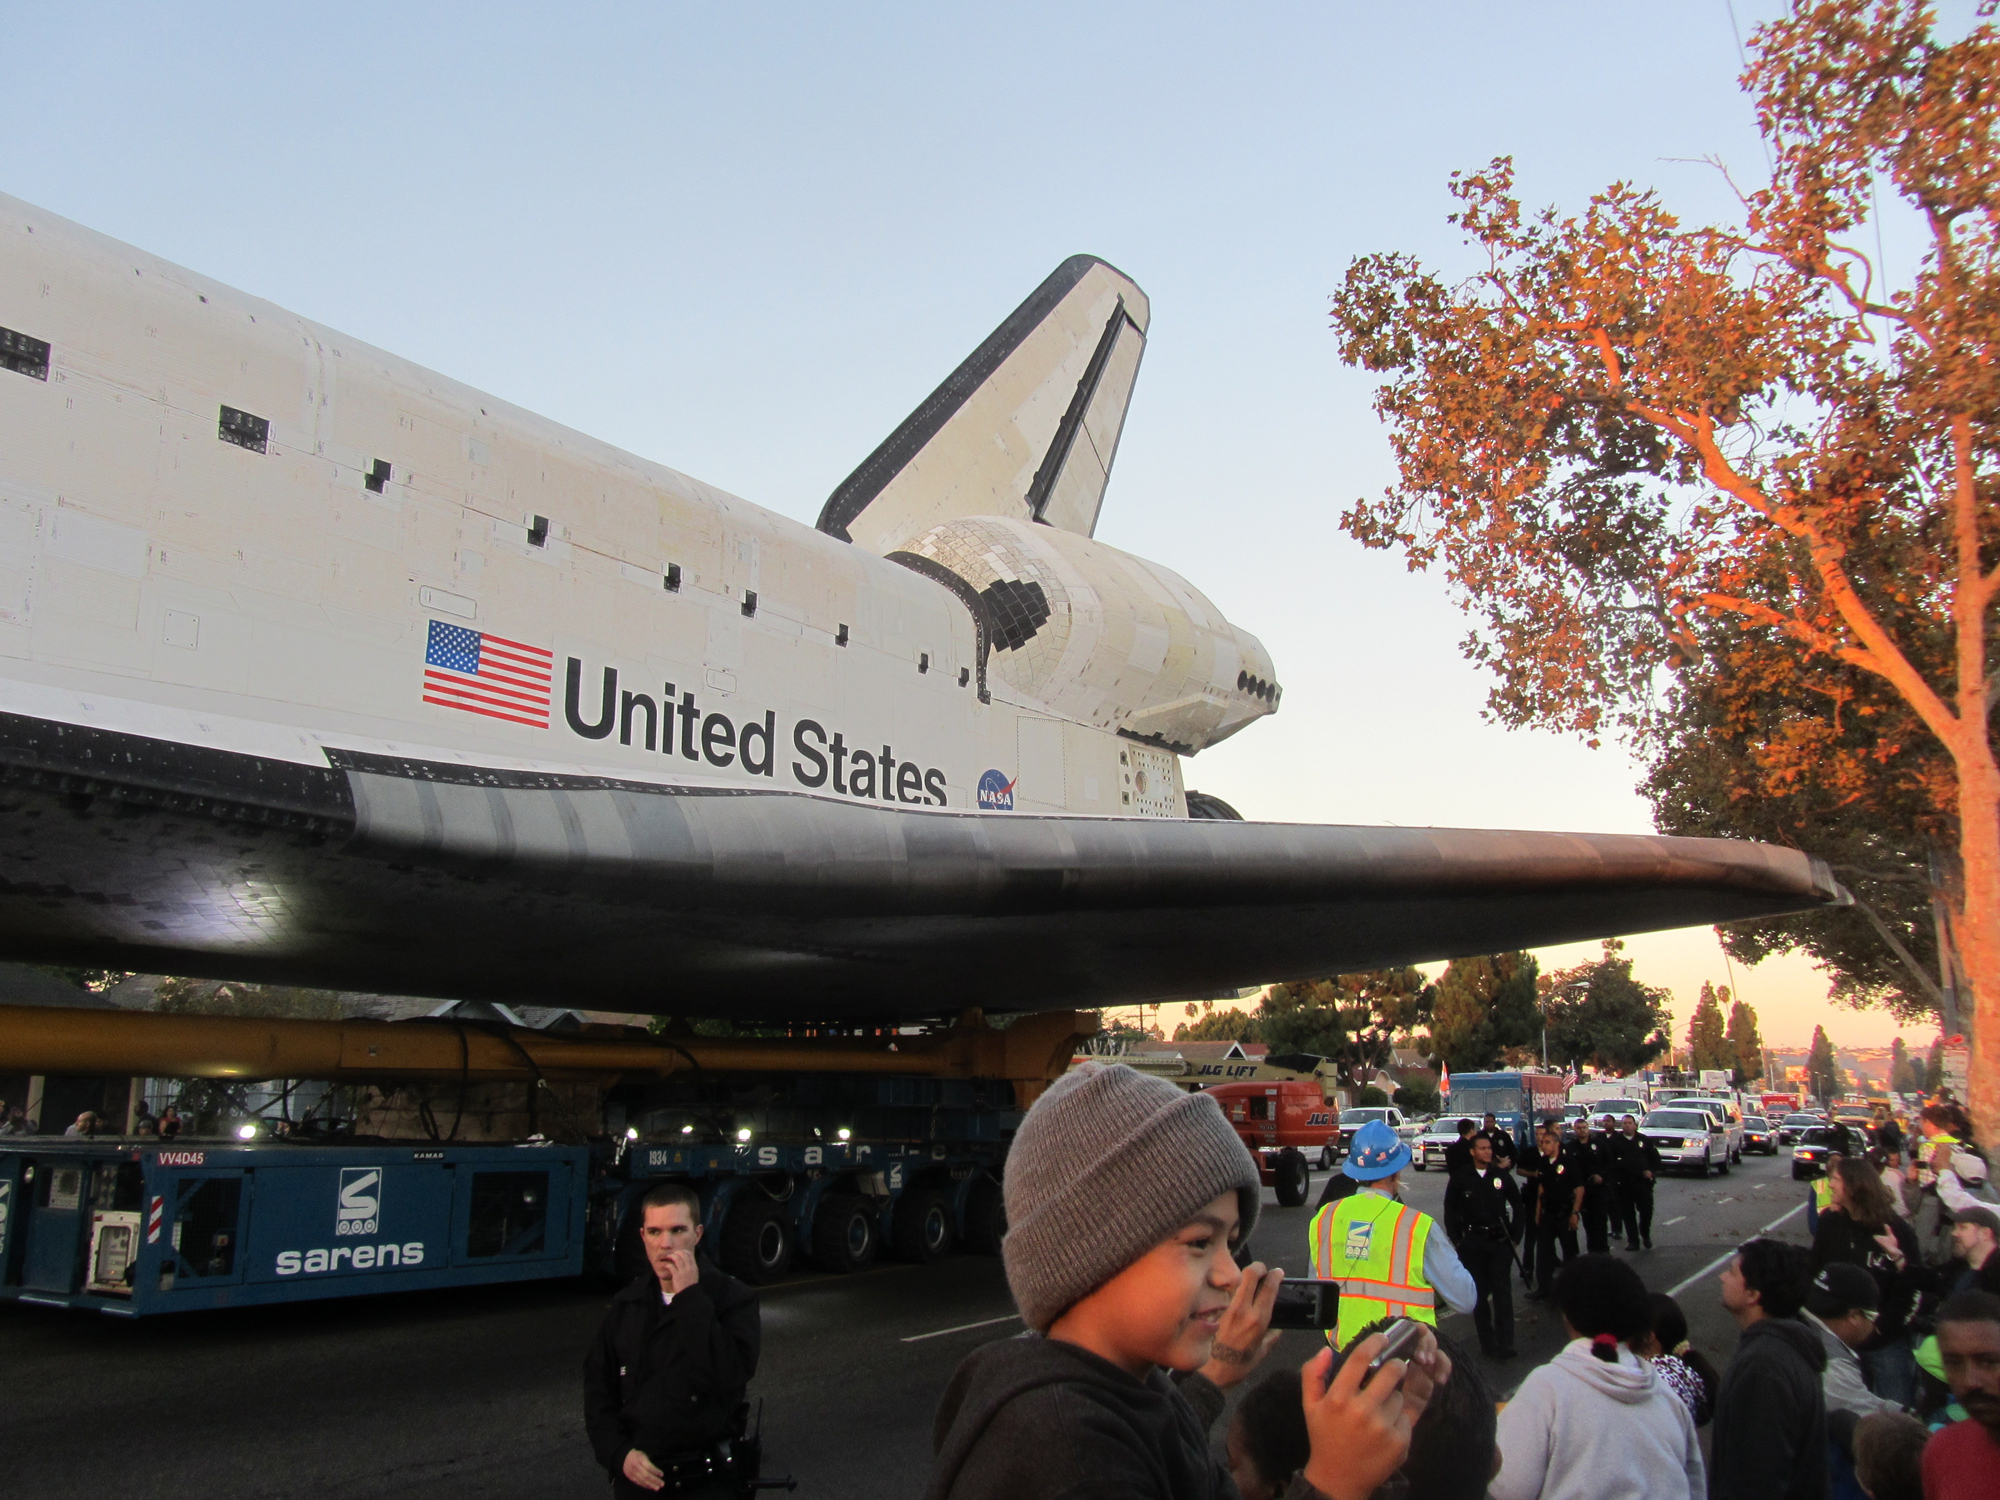 Shuttle Endeavour's Wing Glides Over Crowd